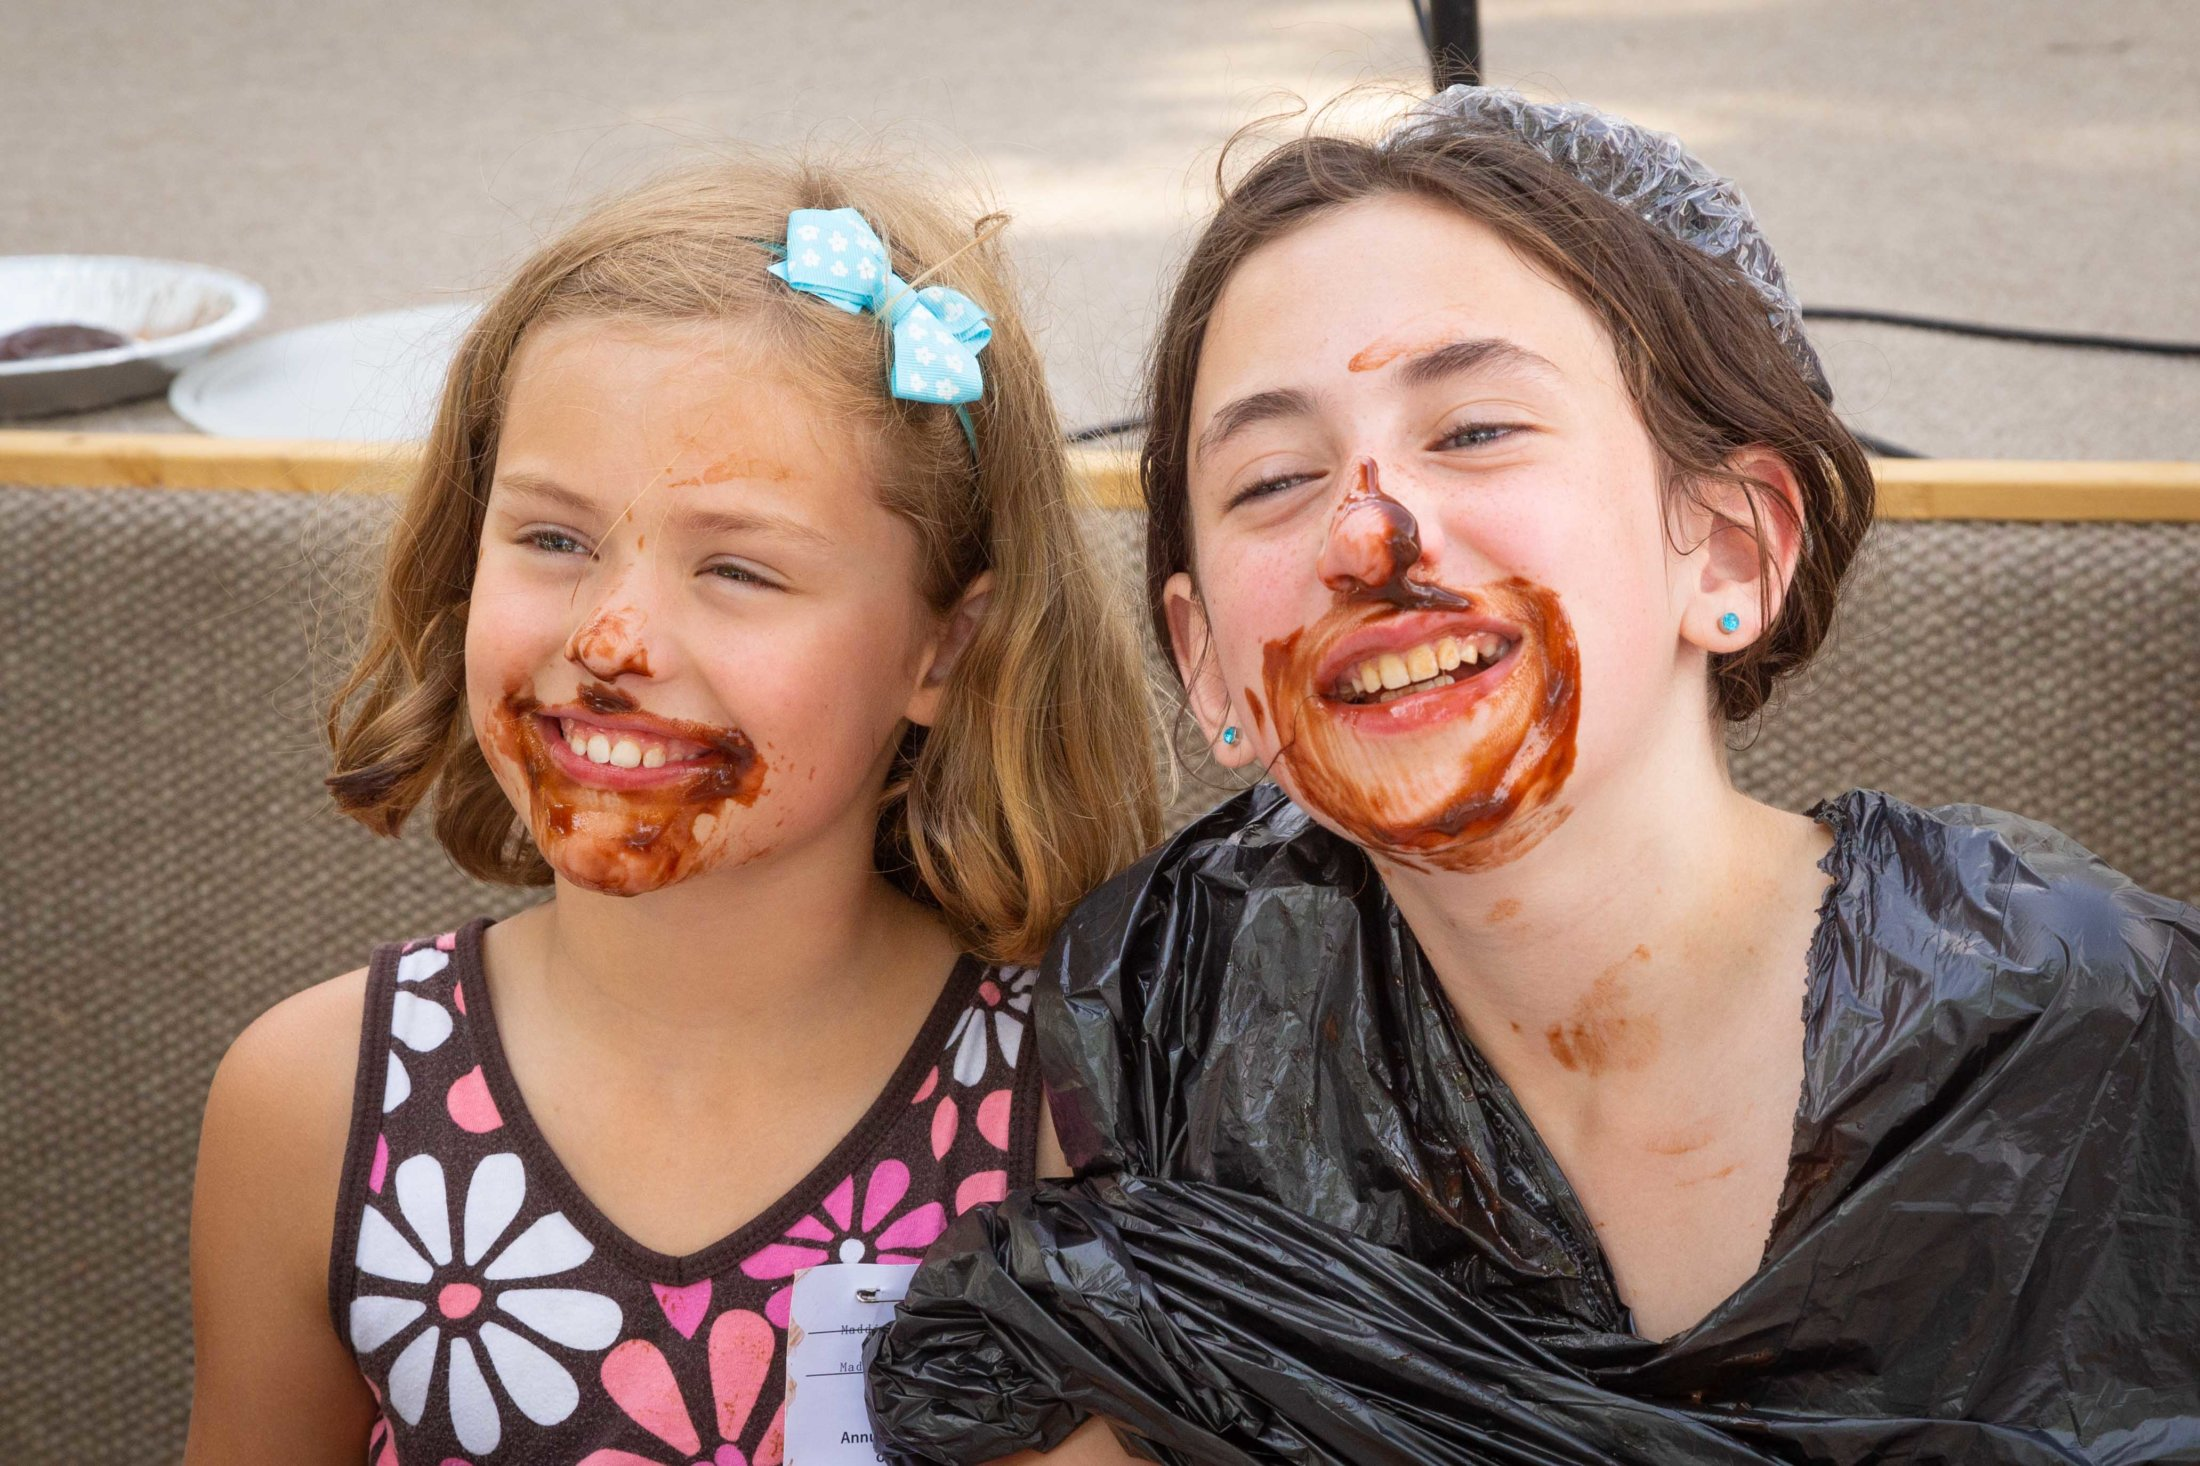 Lydia & Naomi After The Pie Eating Contest